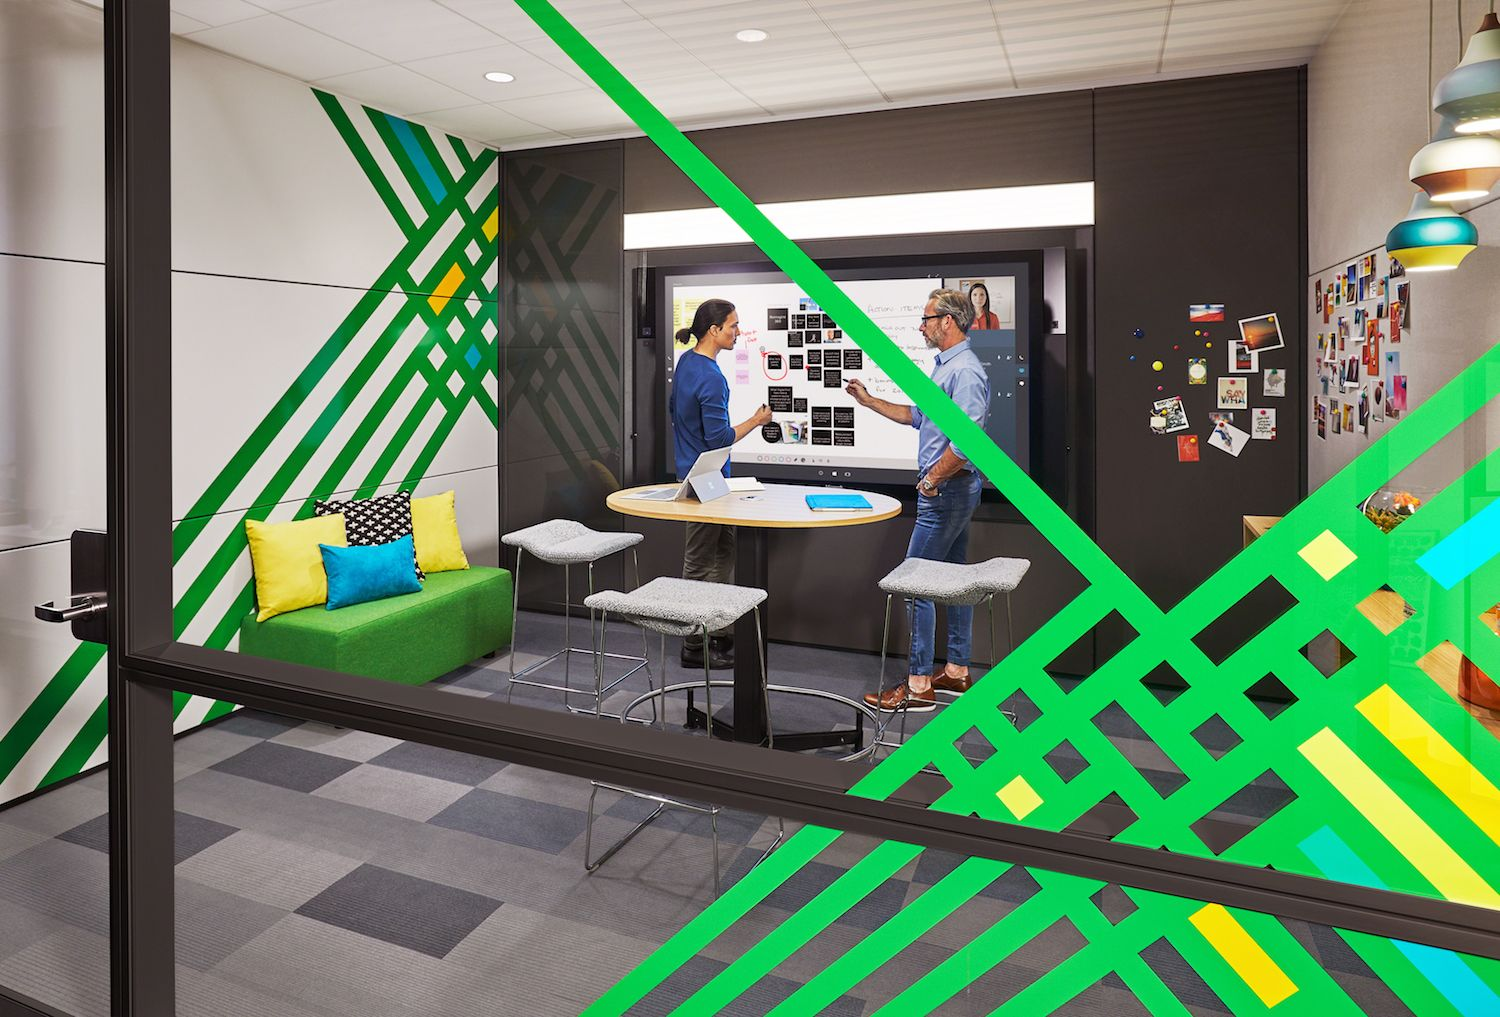 Creative Workspaces Designed to Inspire by Steelcase & Microsoft ...